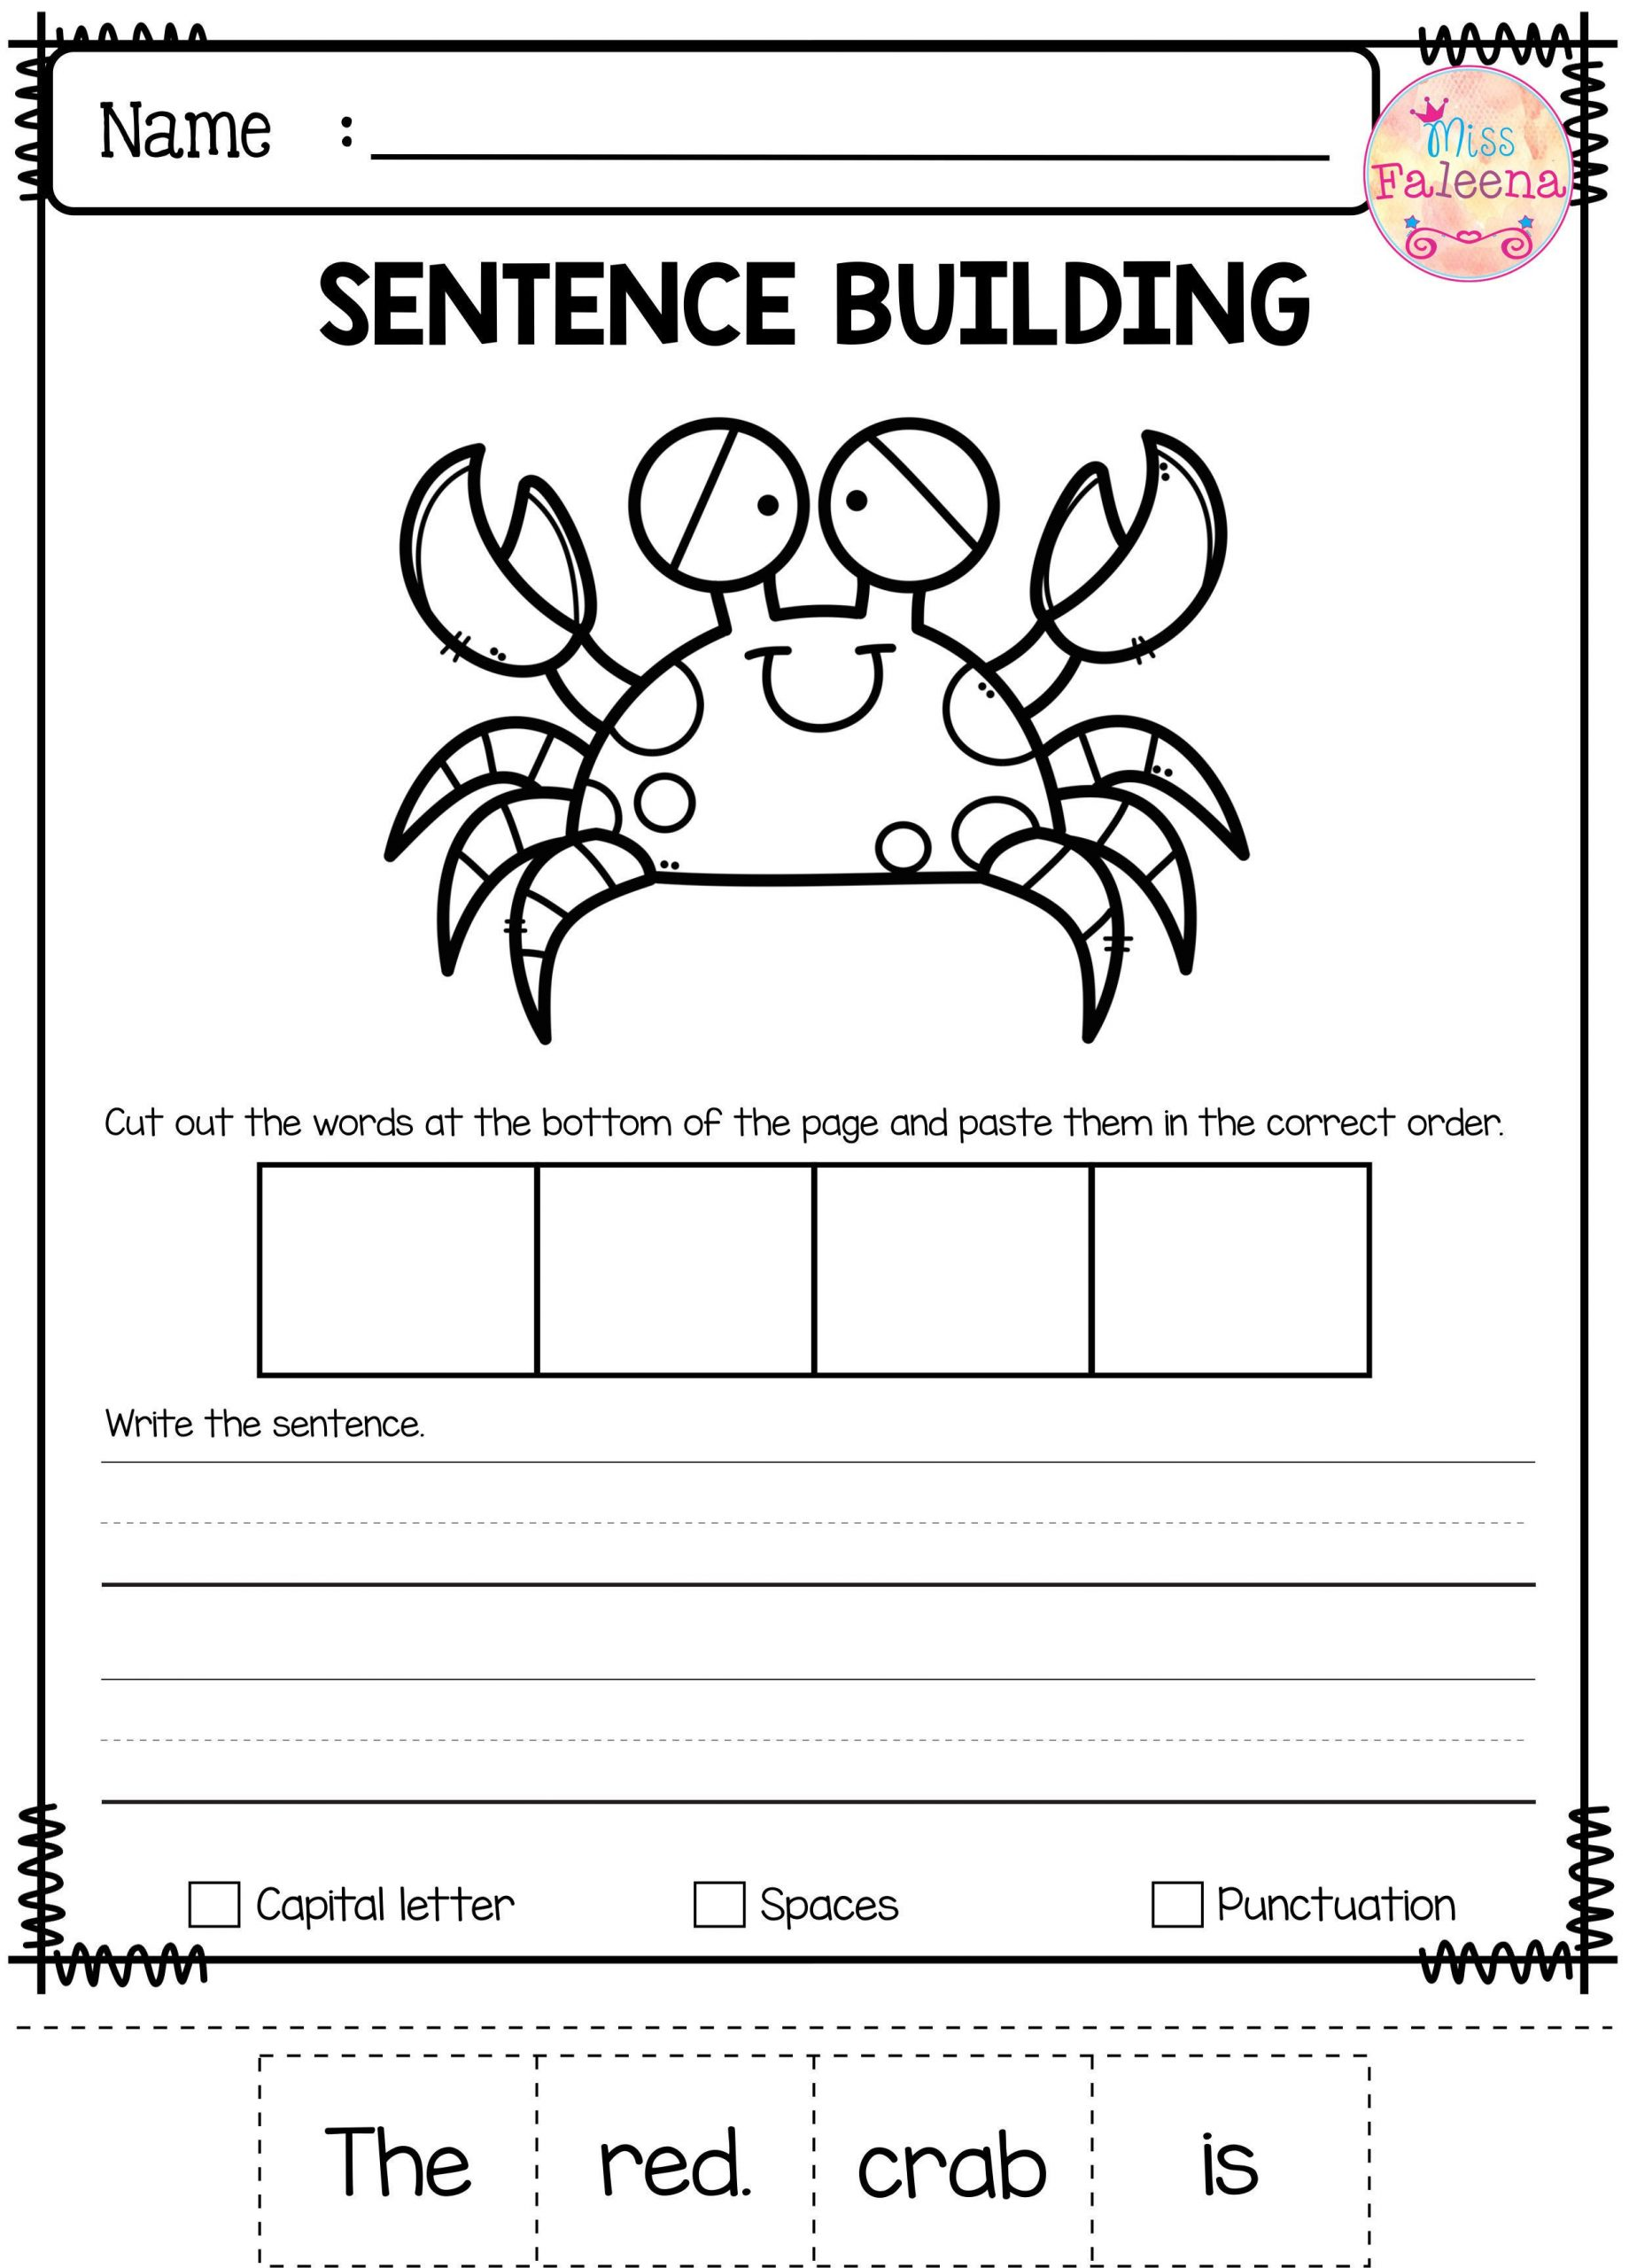 Free Printable Sentence Writing Worksheets Free Sentence Building